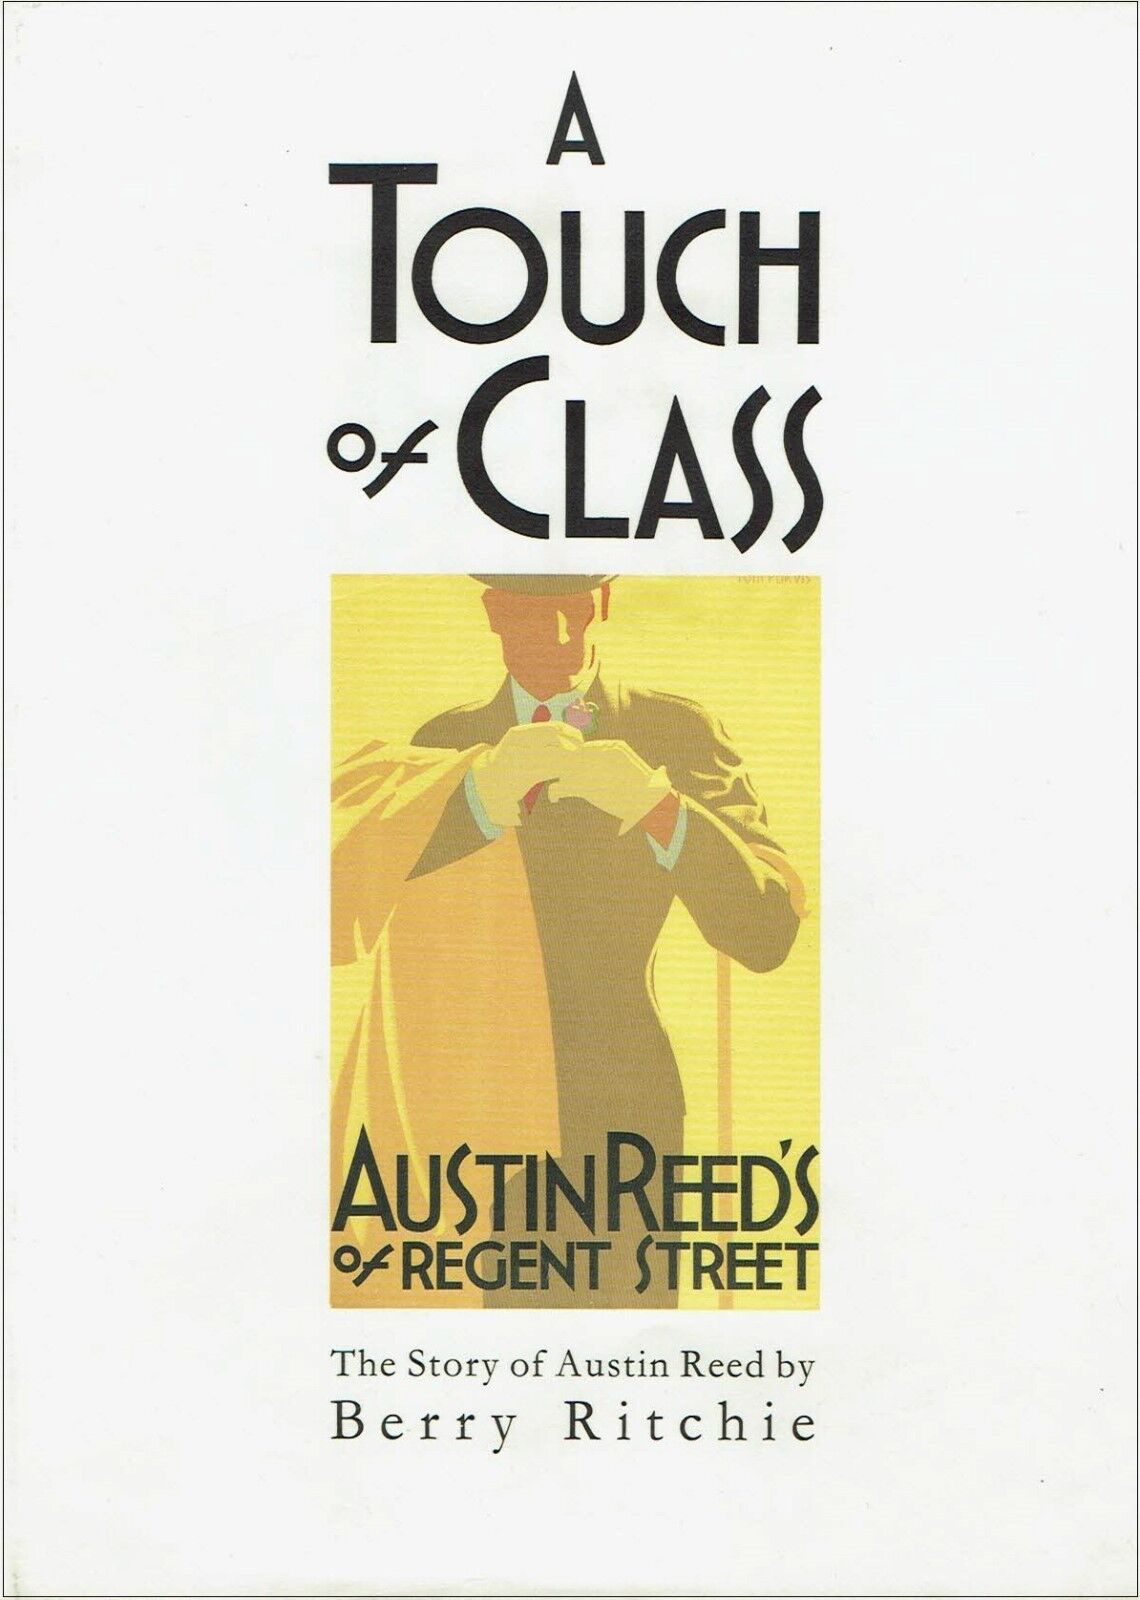 A Touch Of Class Story Of Austin Reed By Berry Ritchie Hardback 1990 For Sale Online Ebay